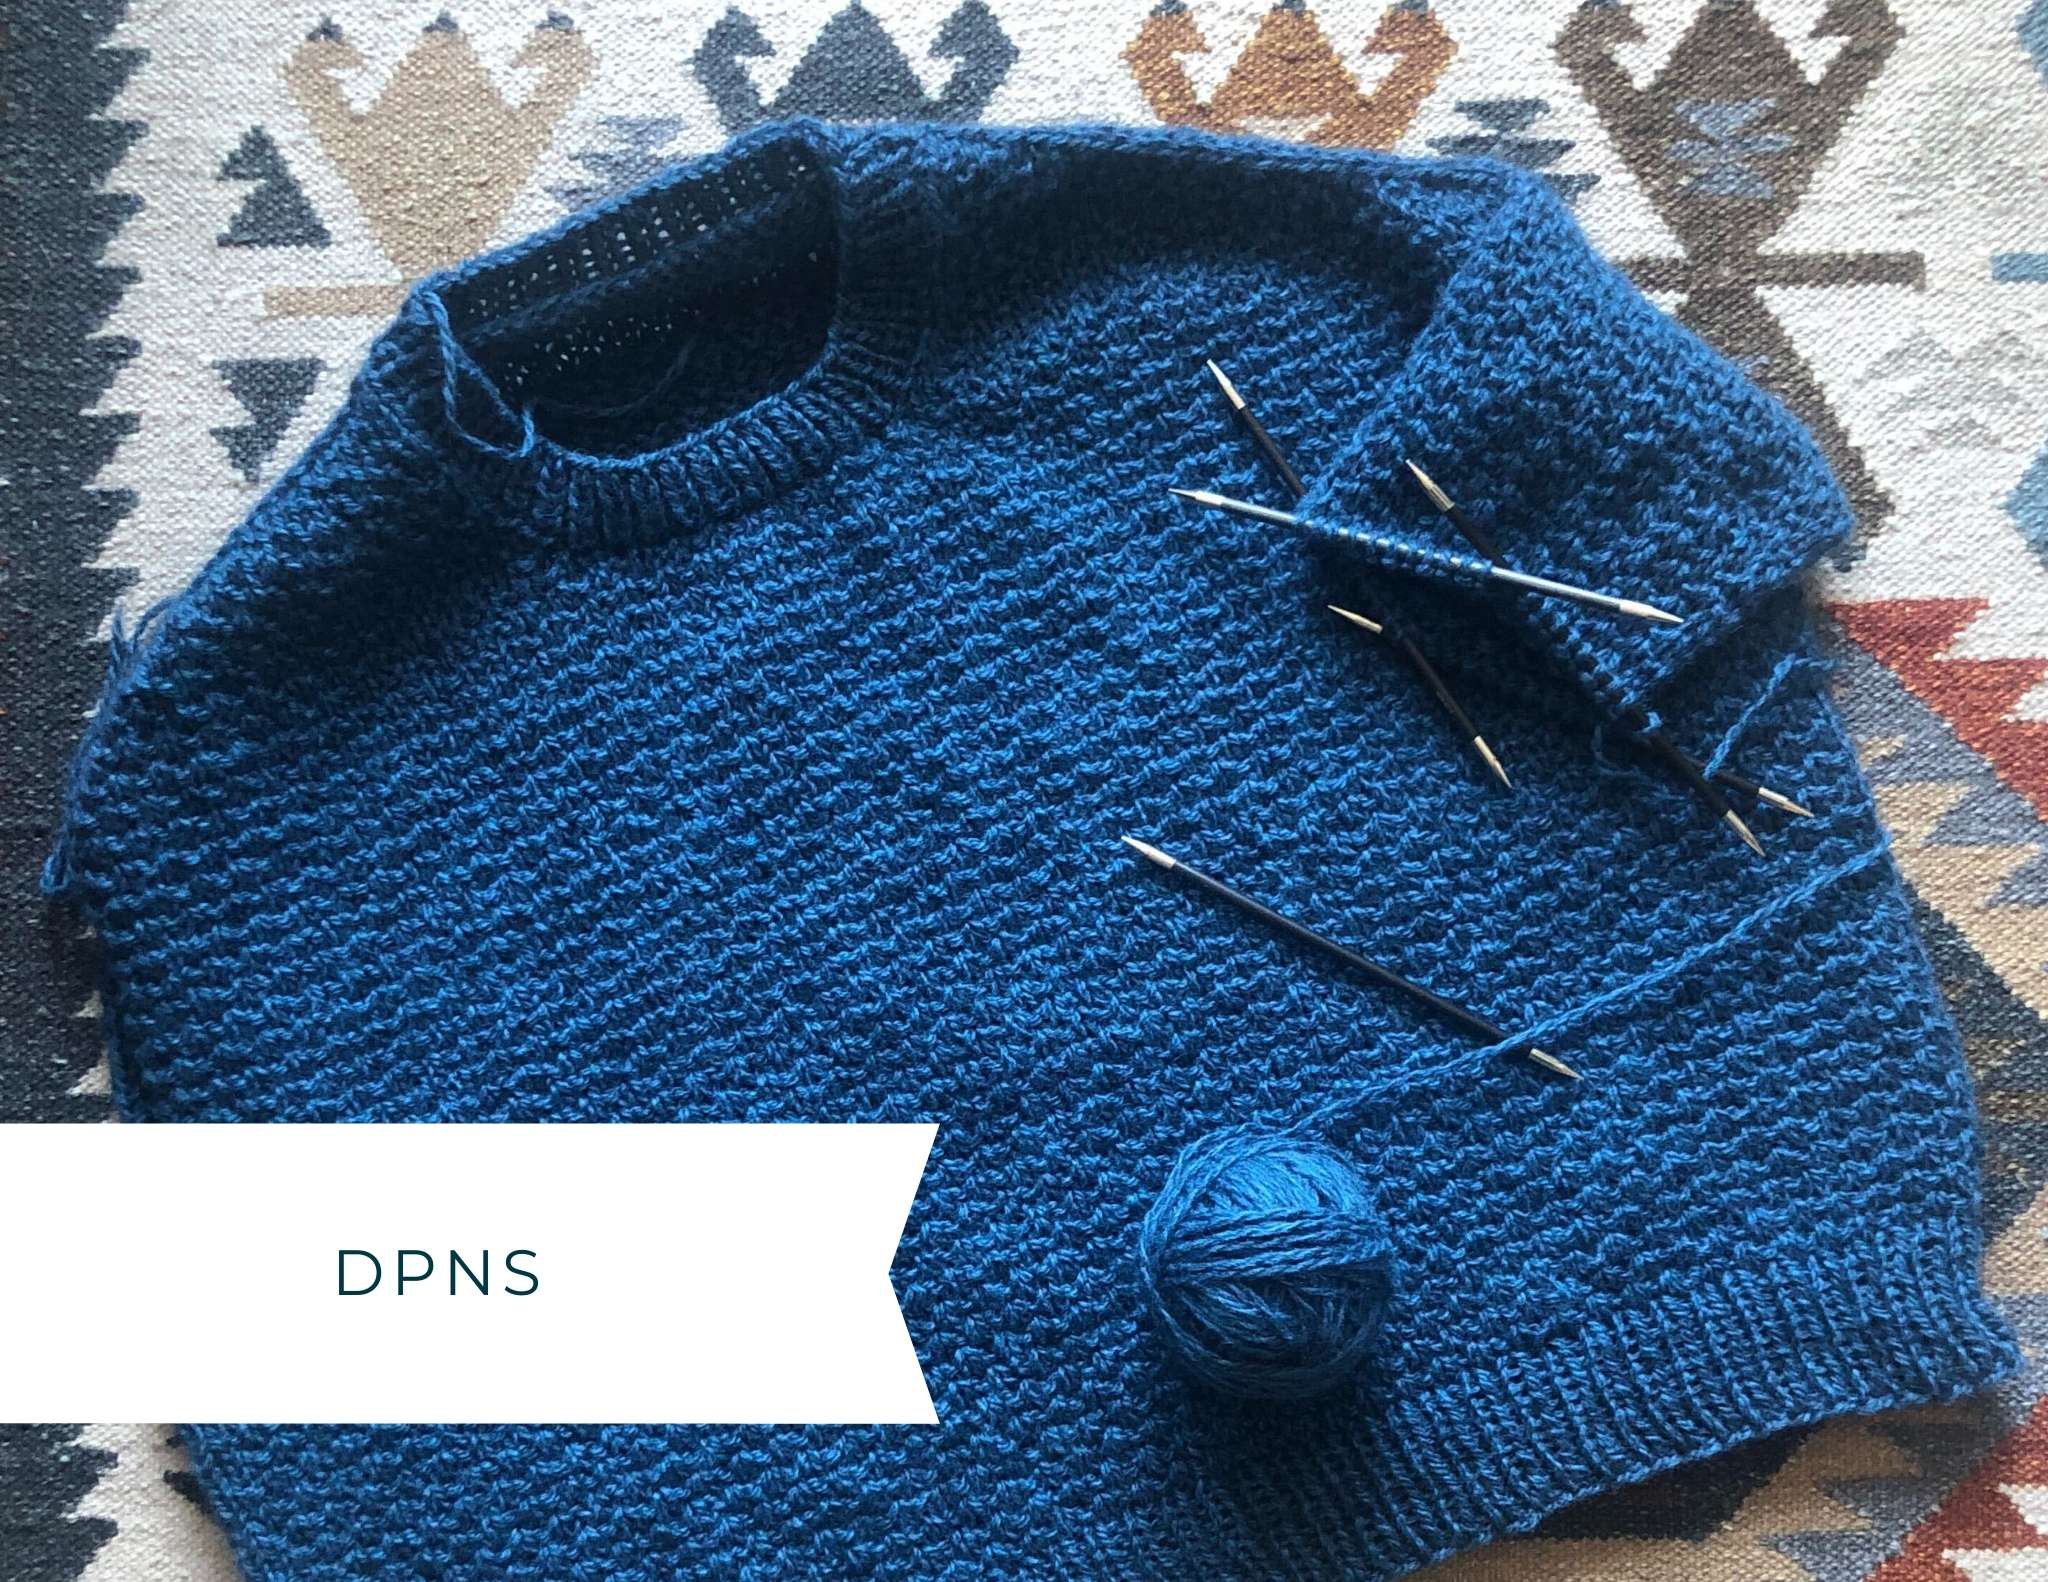 Photo showing a blue glenmore with the sleeve in progress on double pointed needles